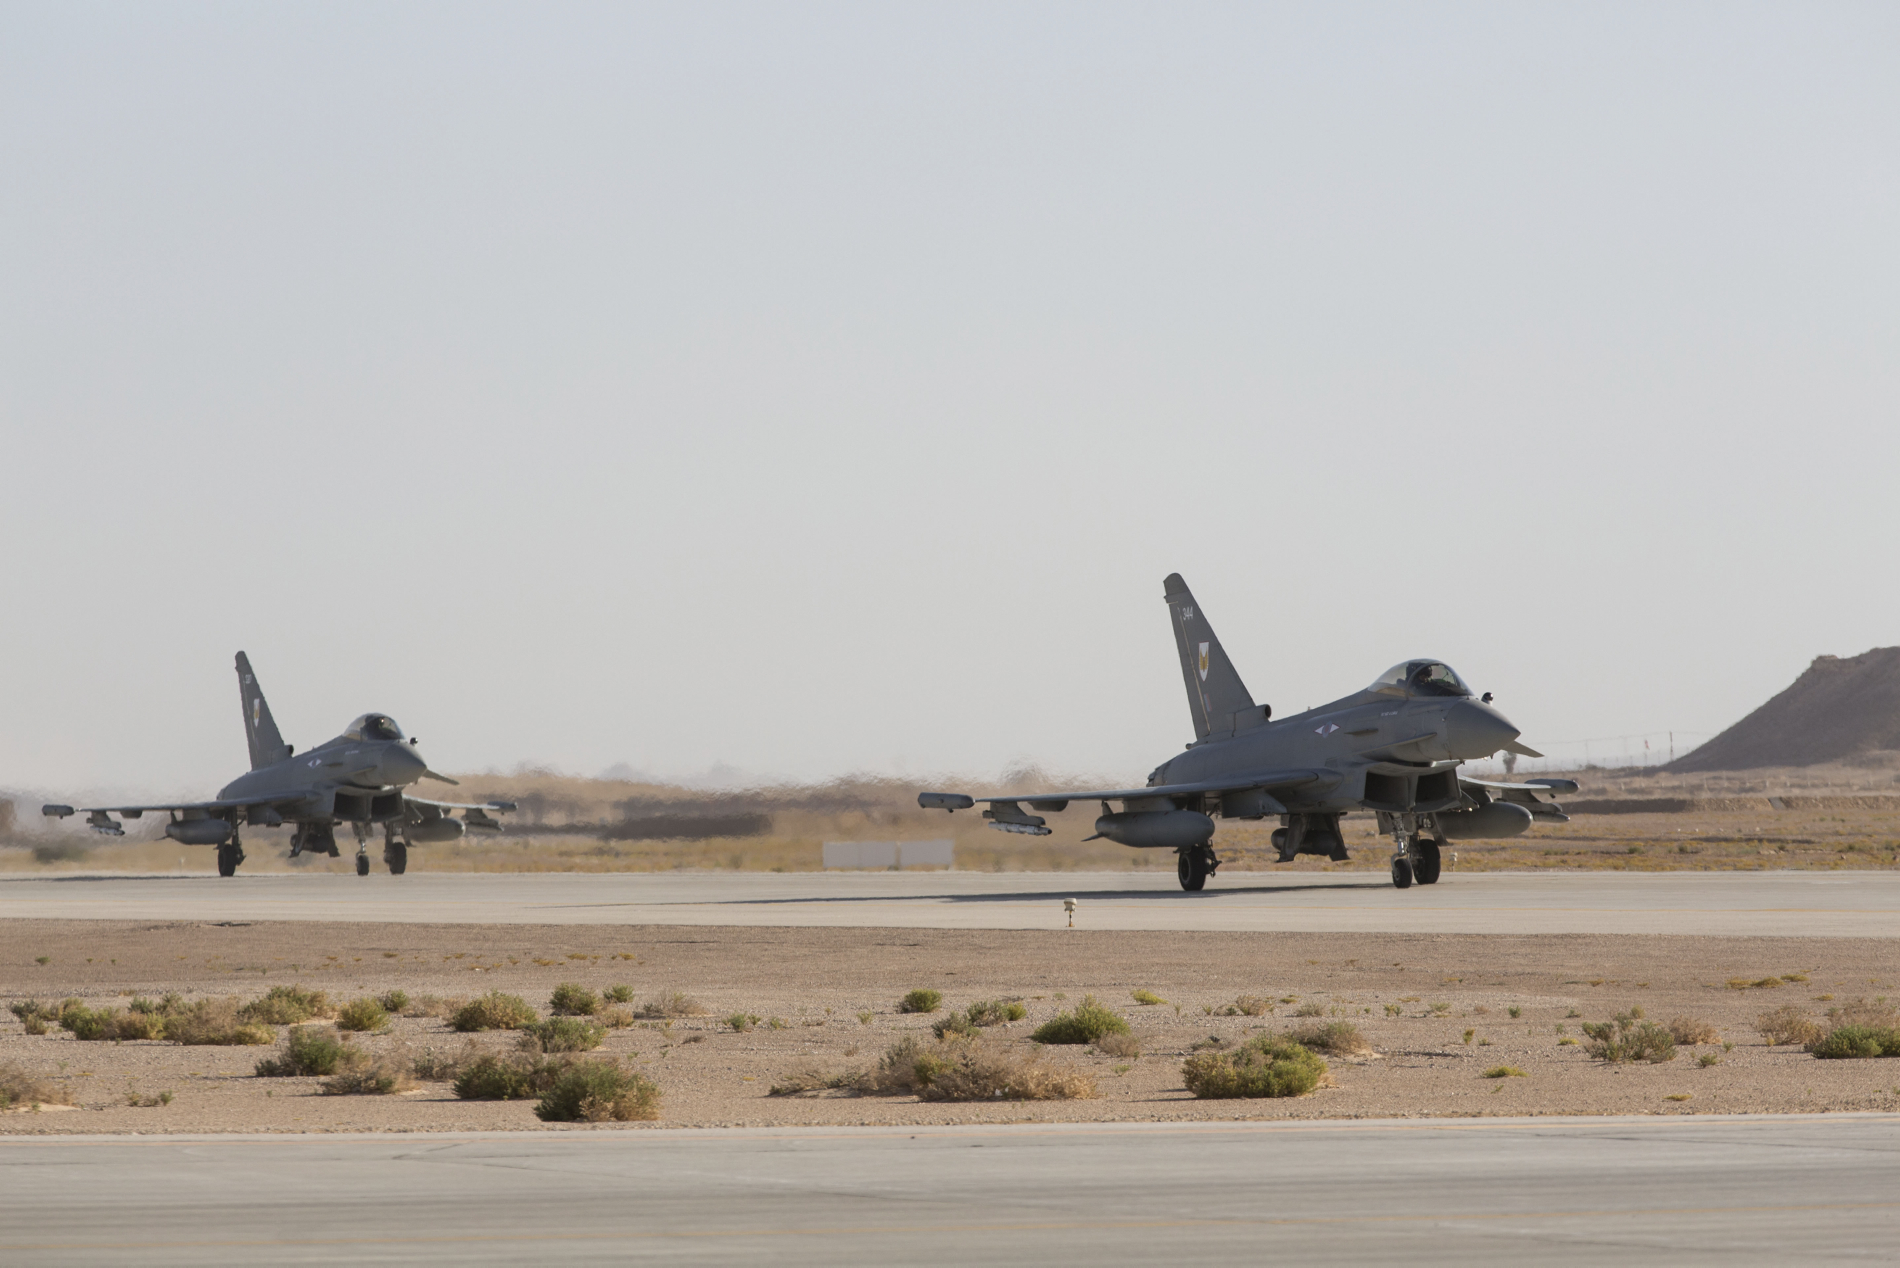 Pictured are Typhoons from RAF Lossiemouth's II (Army Cooperation) Squadron arriving at Thumrait Airbase.